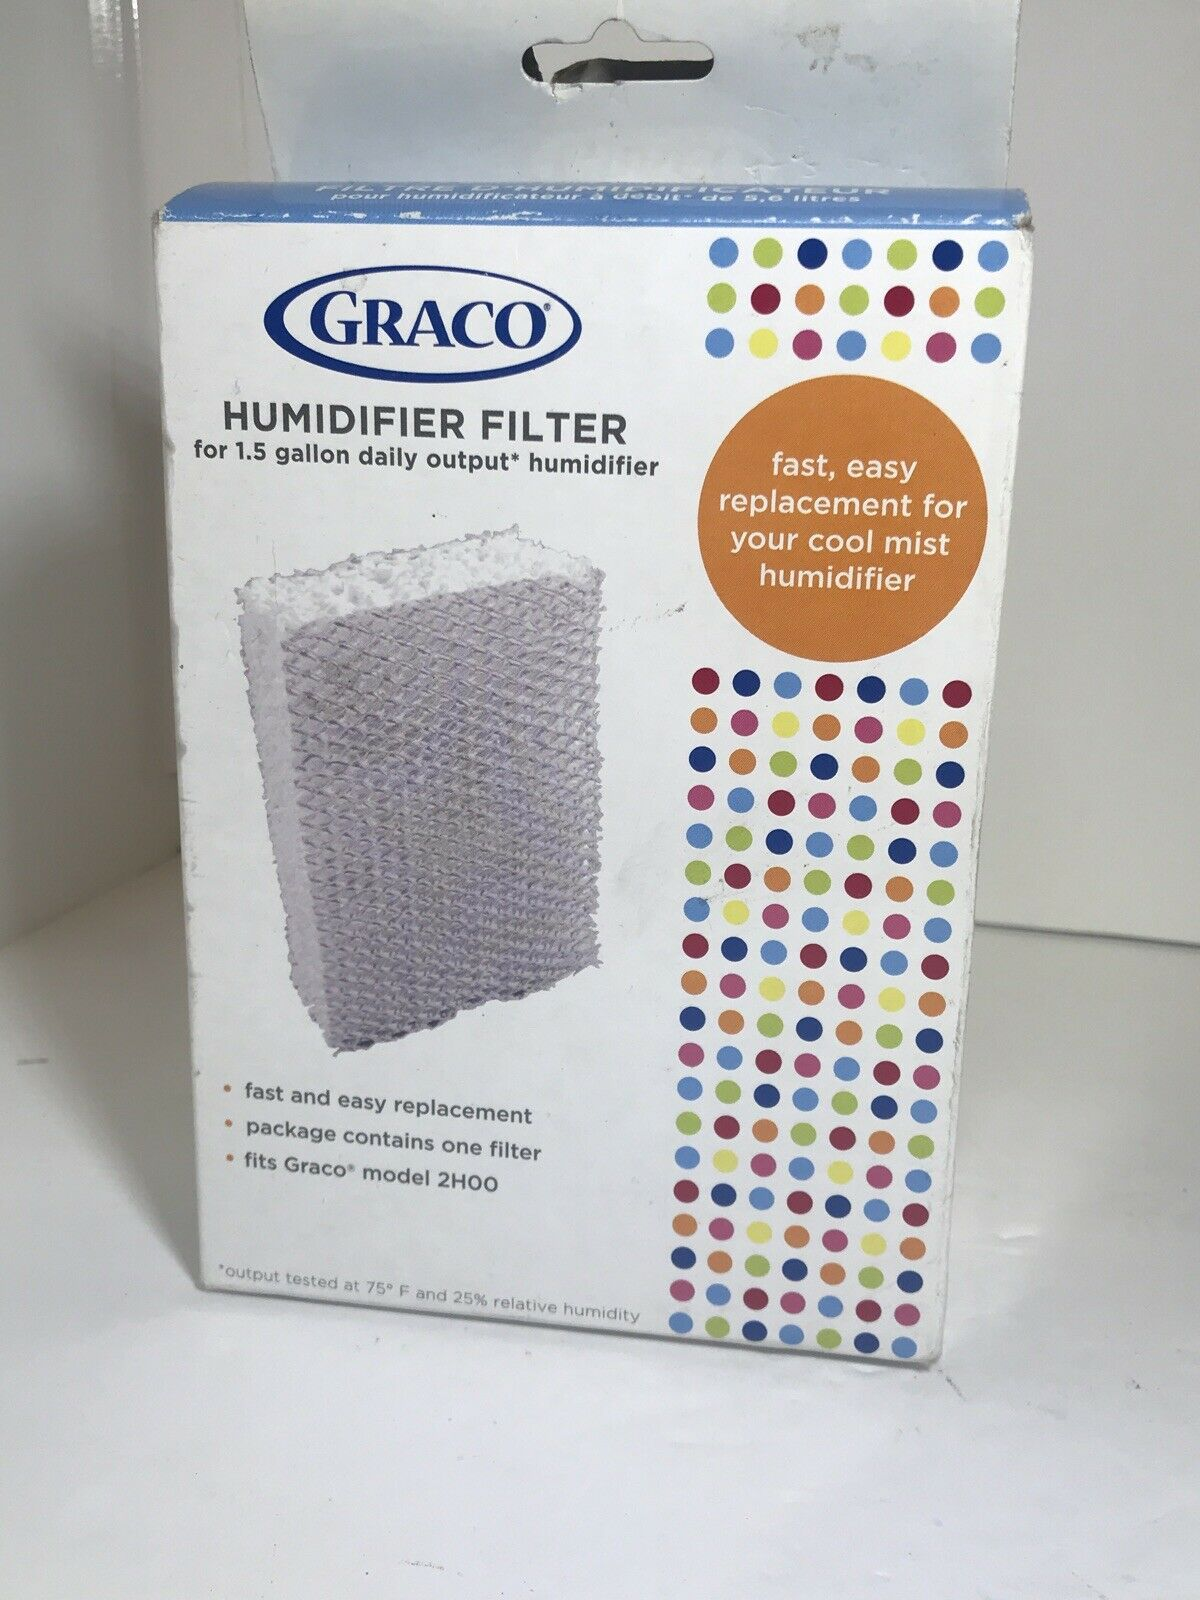 Genuine GRACO 2H01 Humidifier Filter for model 2H00 IN BOX